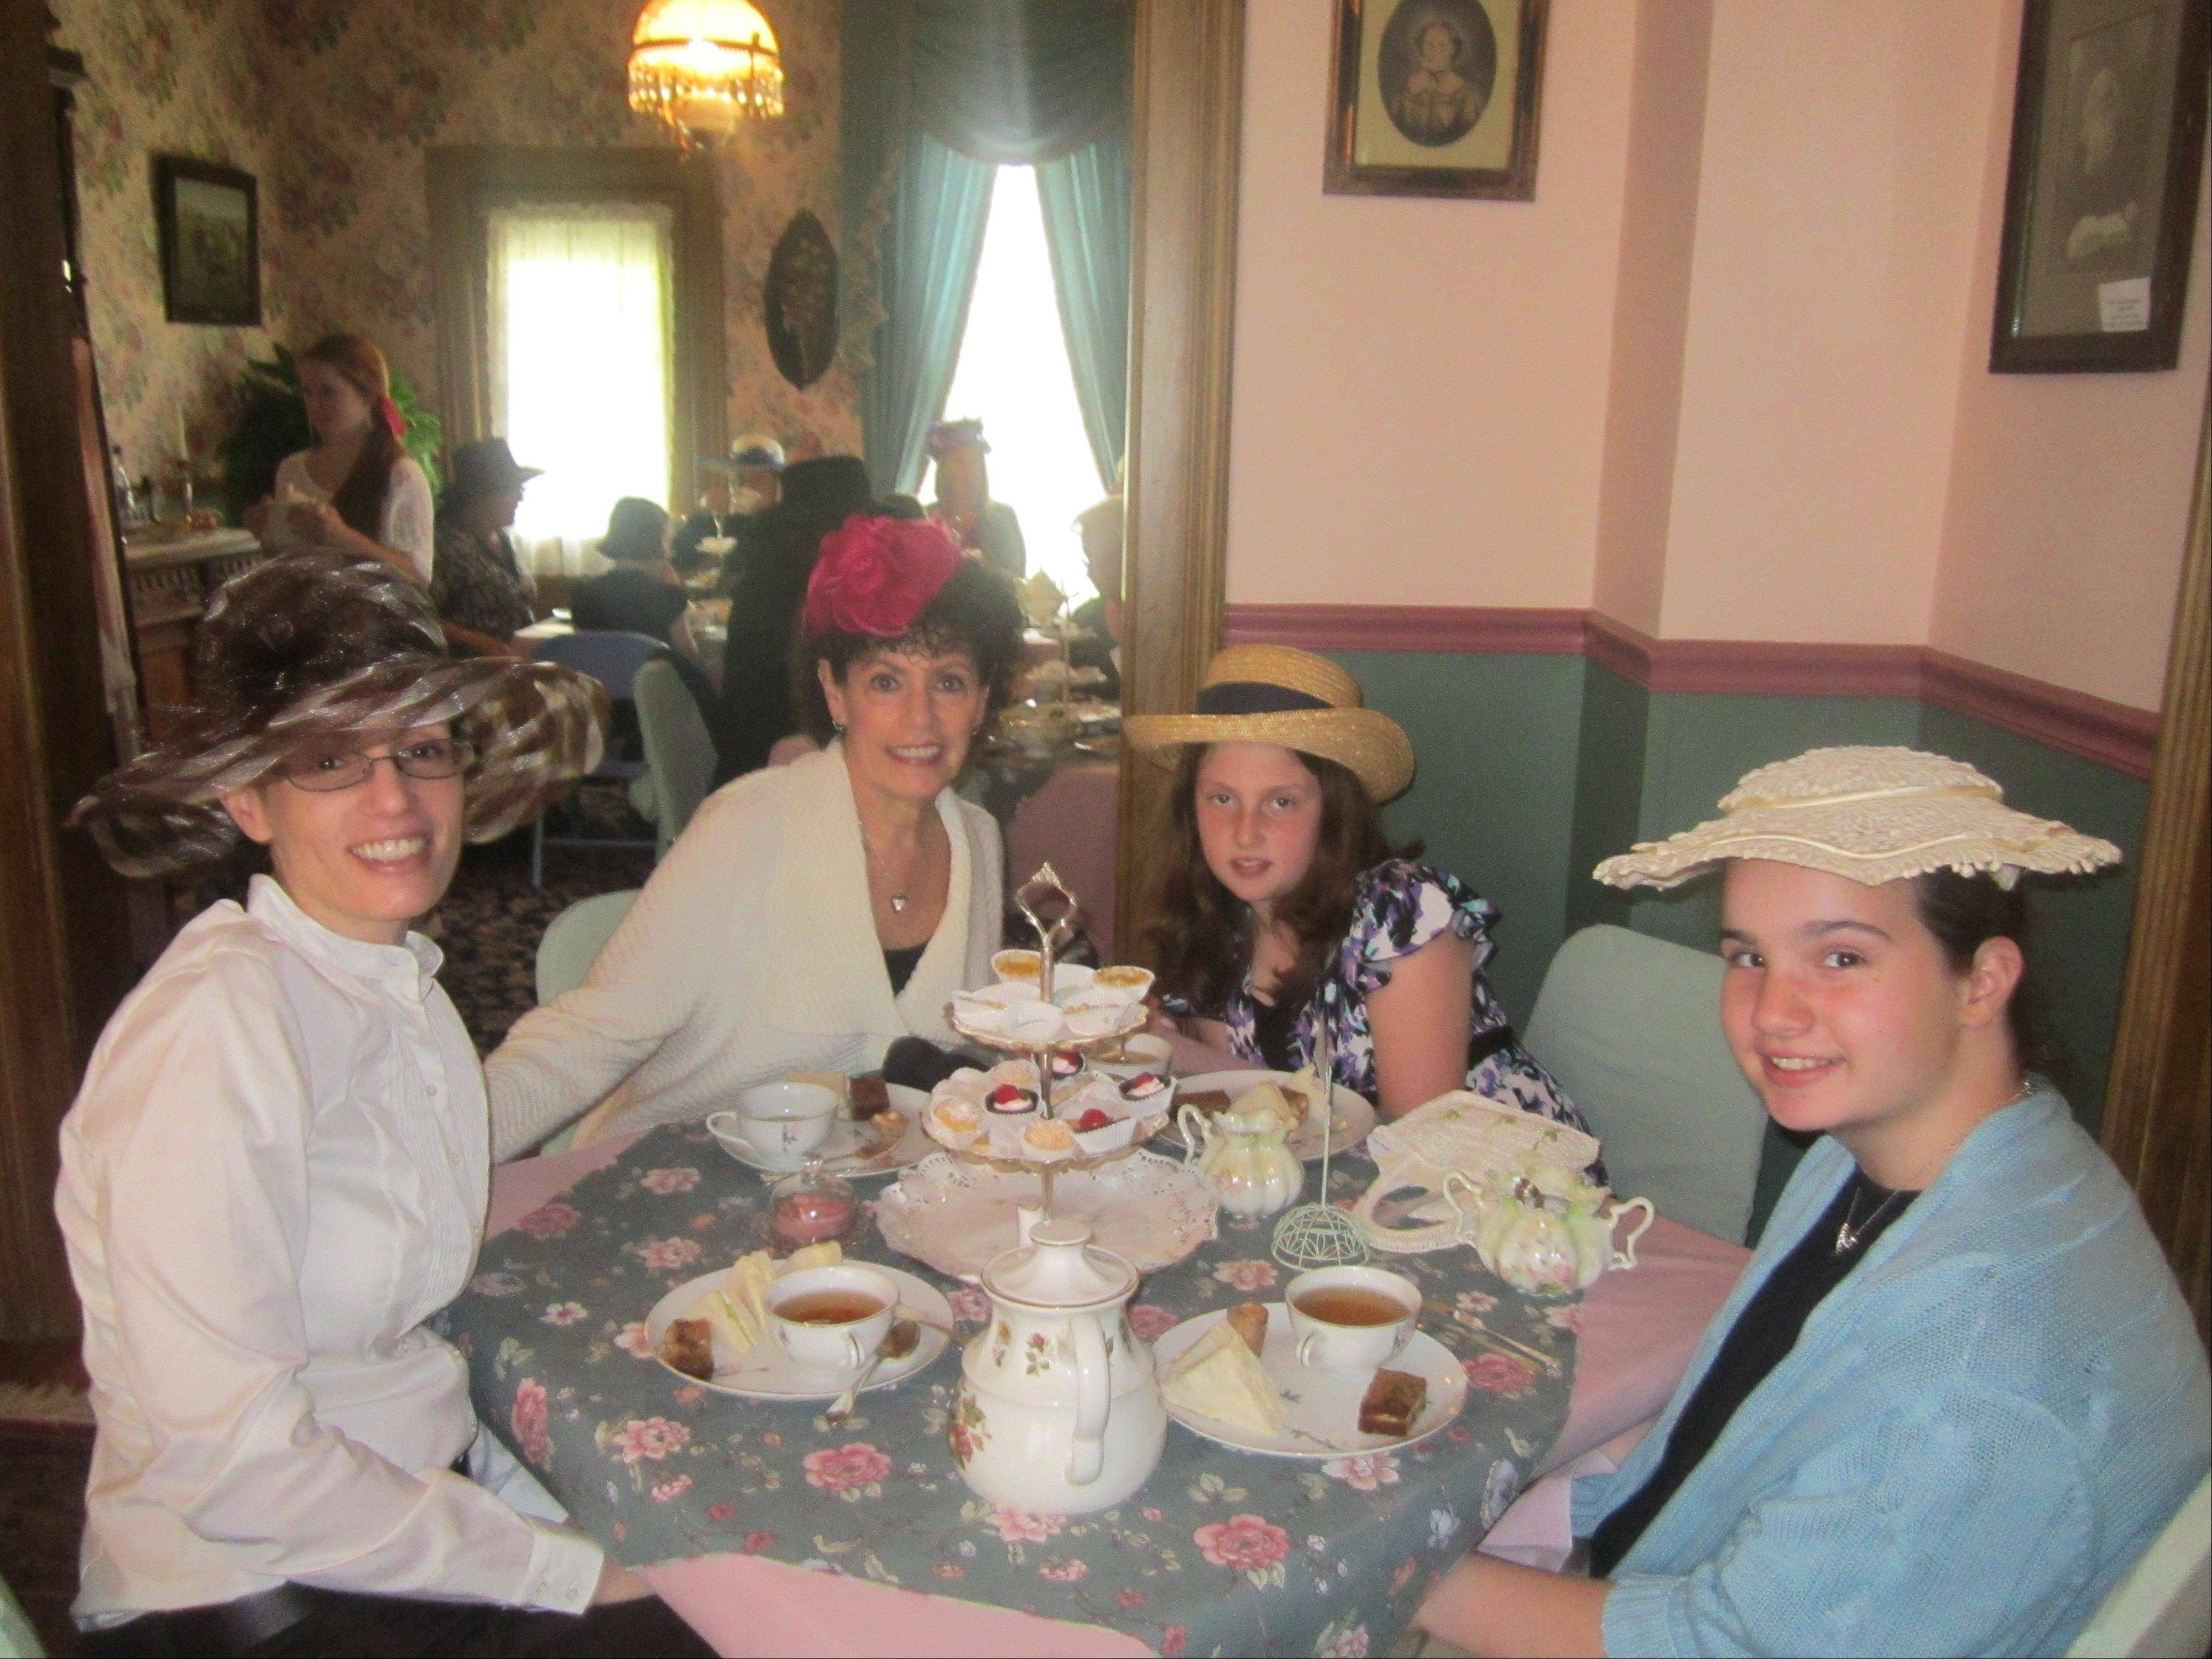 In the Victorian spirit, friends enjoy last year's tea at Clayson House in Palatine. This year's 19th annual event will feature a program on Victorian collections.